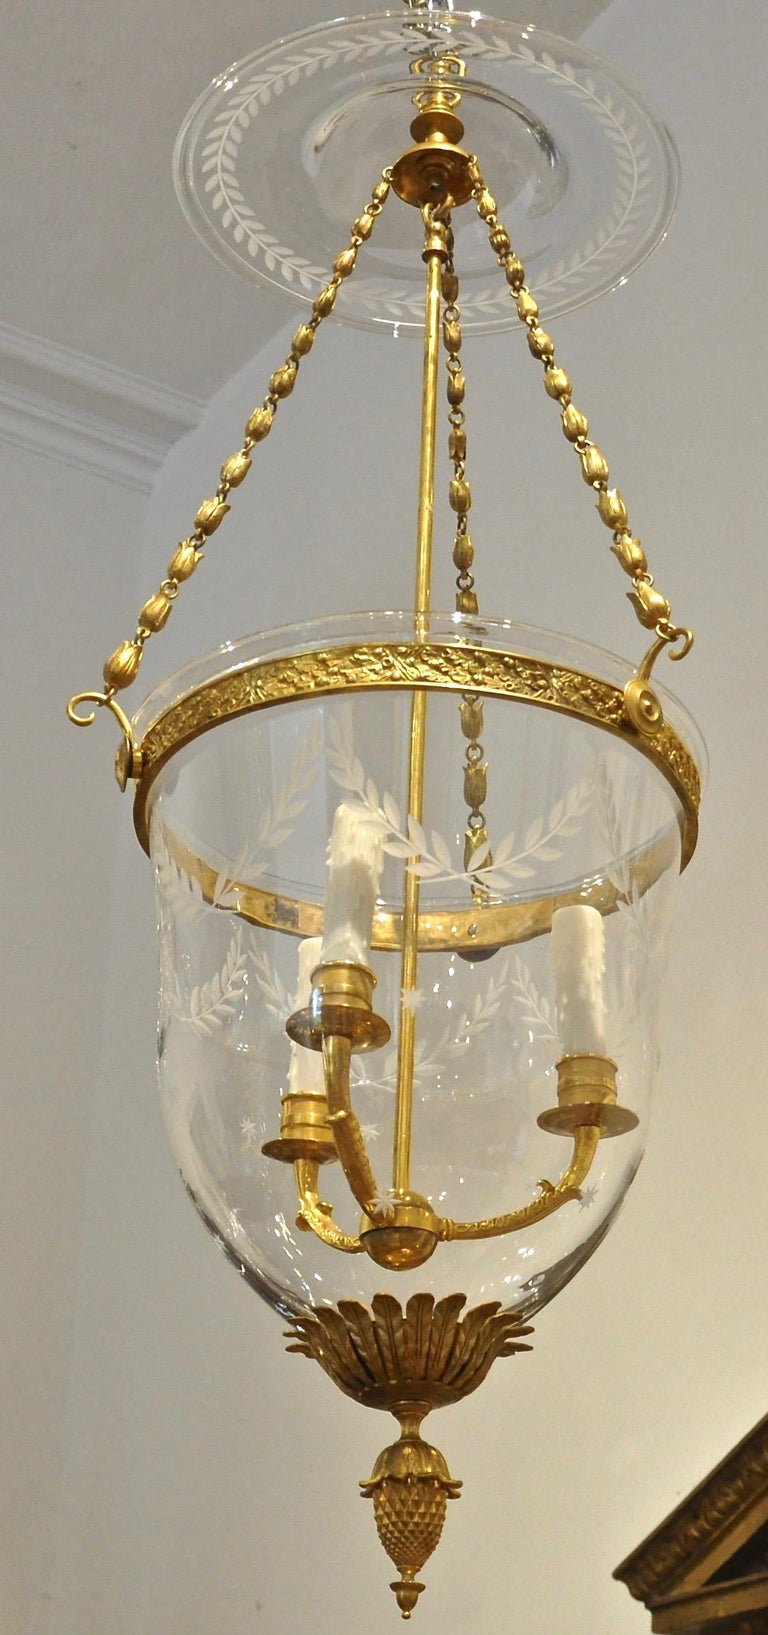 Russian Gilt Bronze Neoclassical Style Bell Jar Hall Lantern For Sale 3